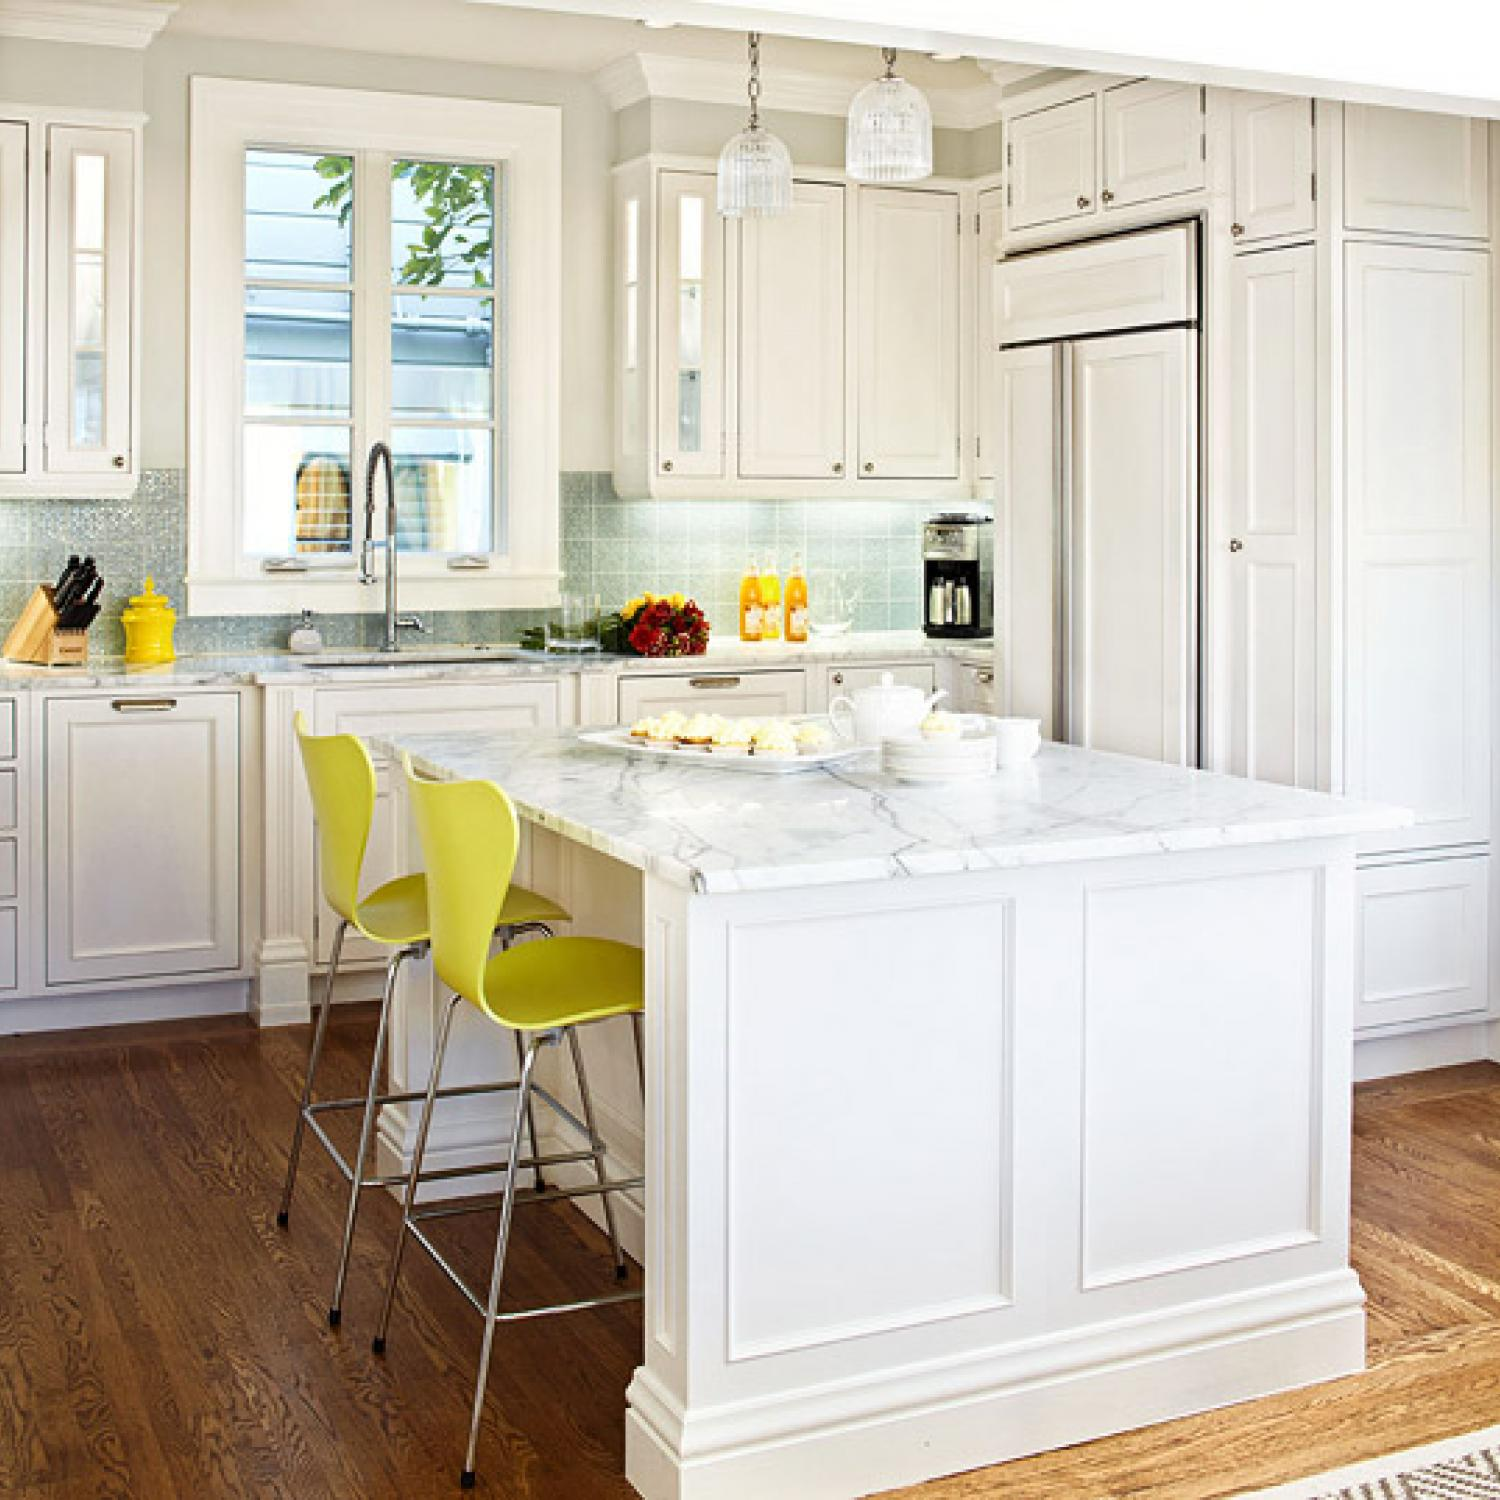 Design ideas for white kitchens traditional home for Kitchen cabinets ideas pictures